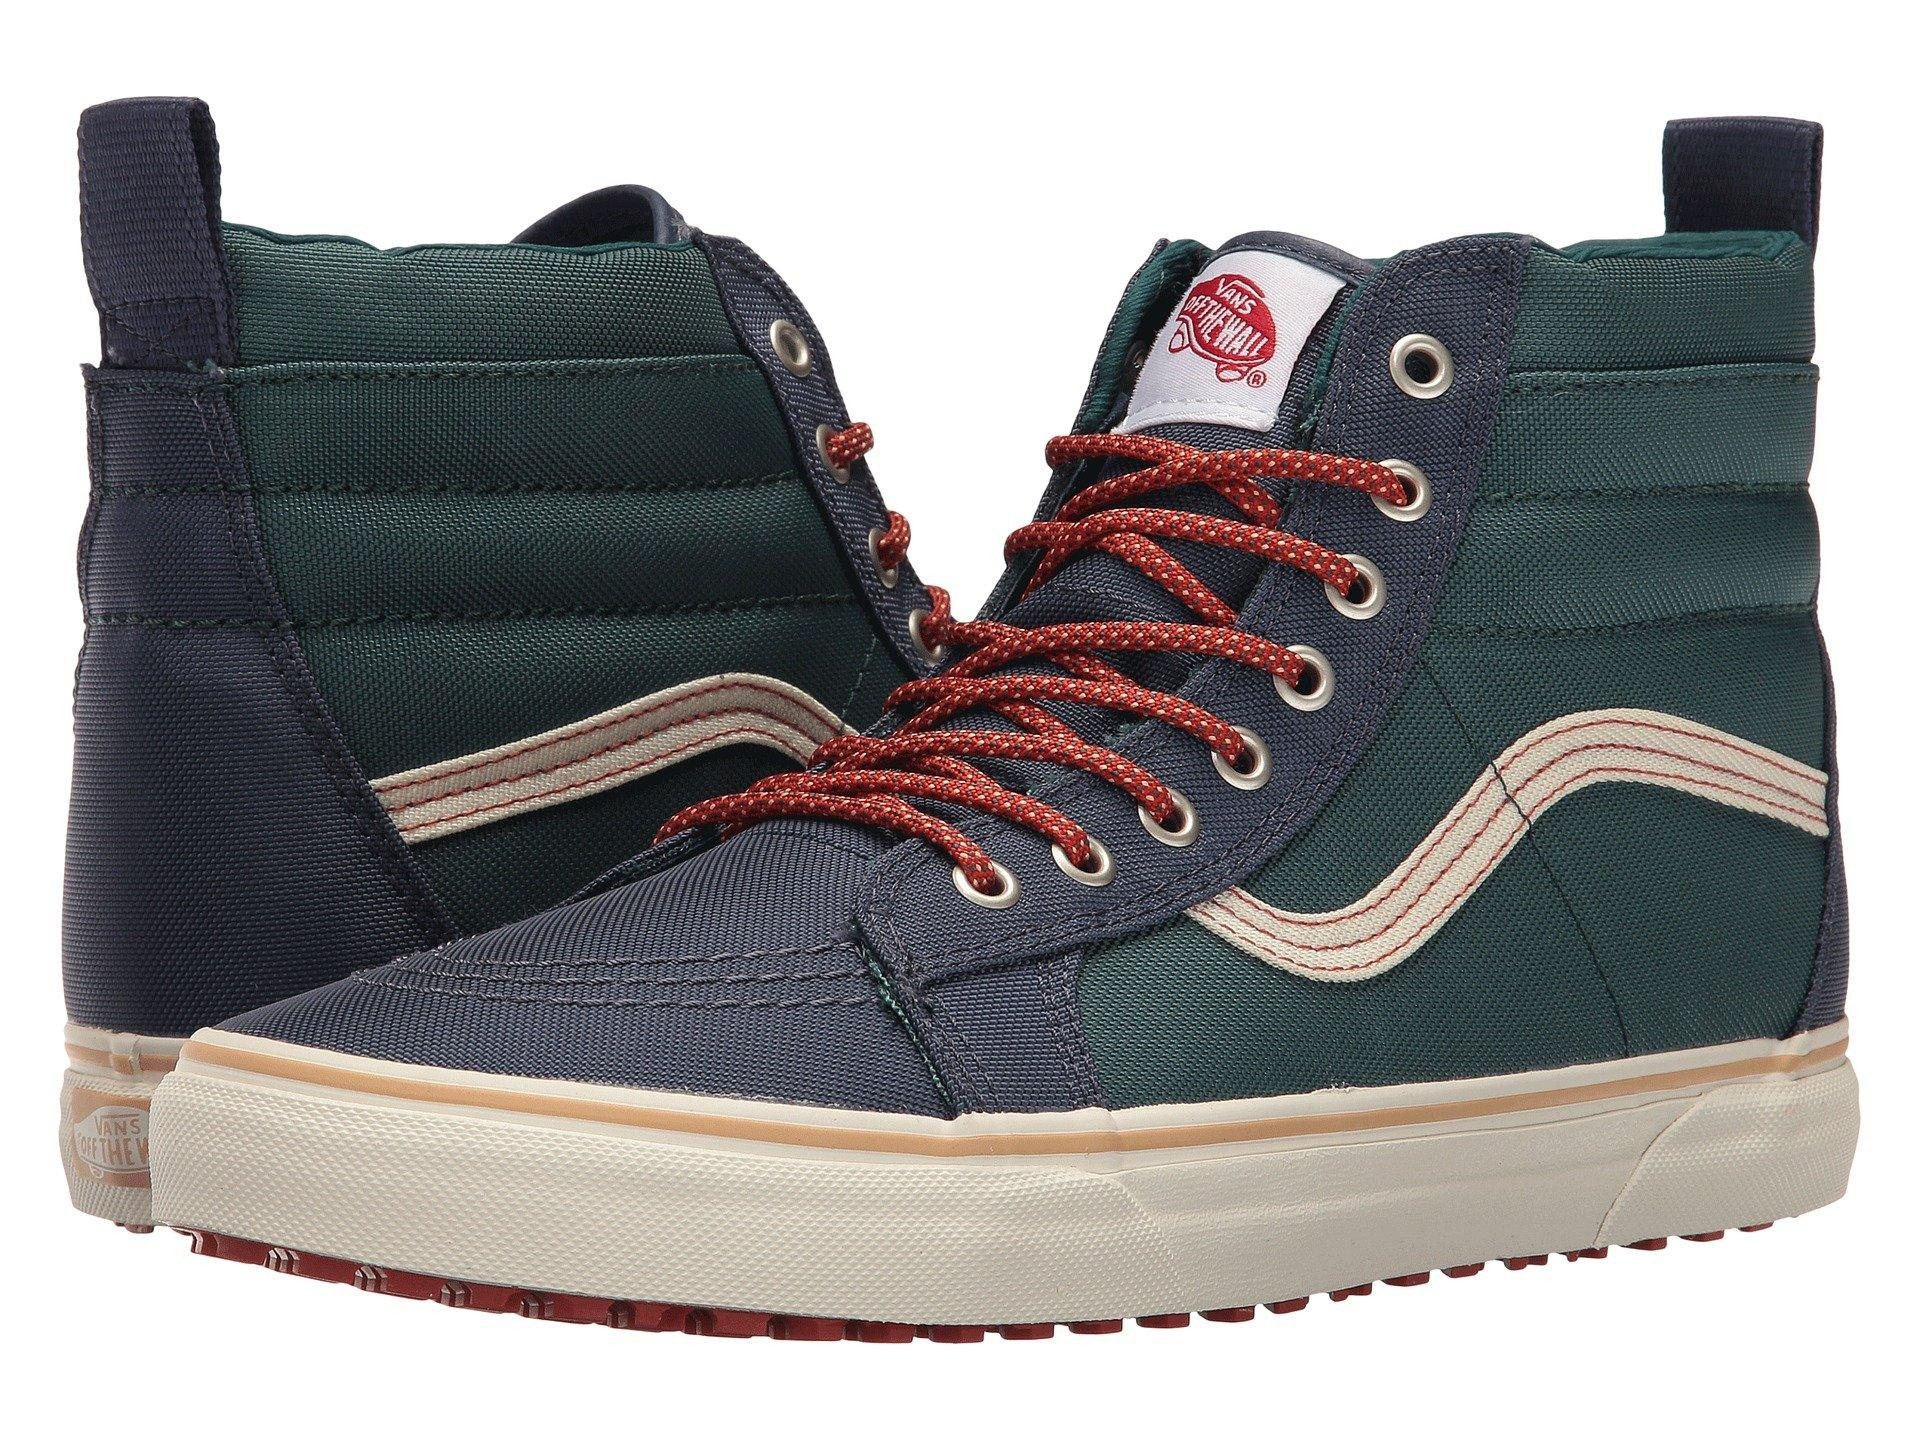 6bad2dd748 Vans Sk8-Hi Mte Dx In (Mte) Ballistic Navy